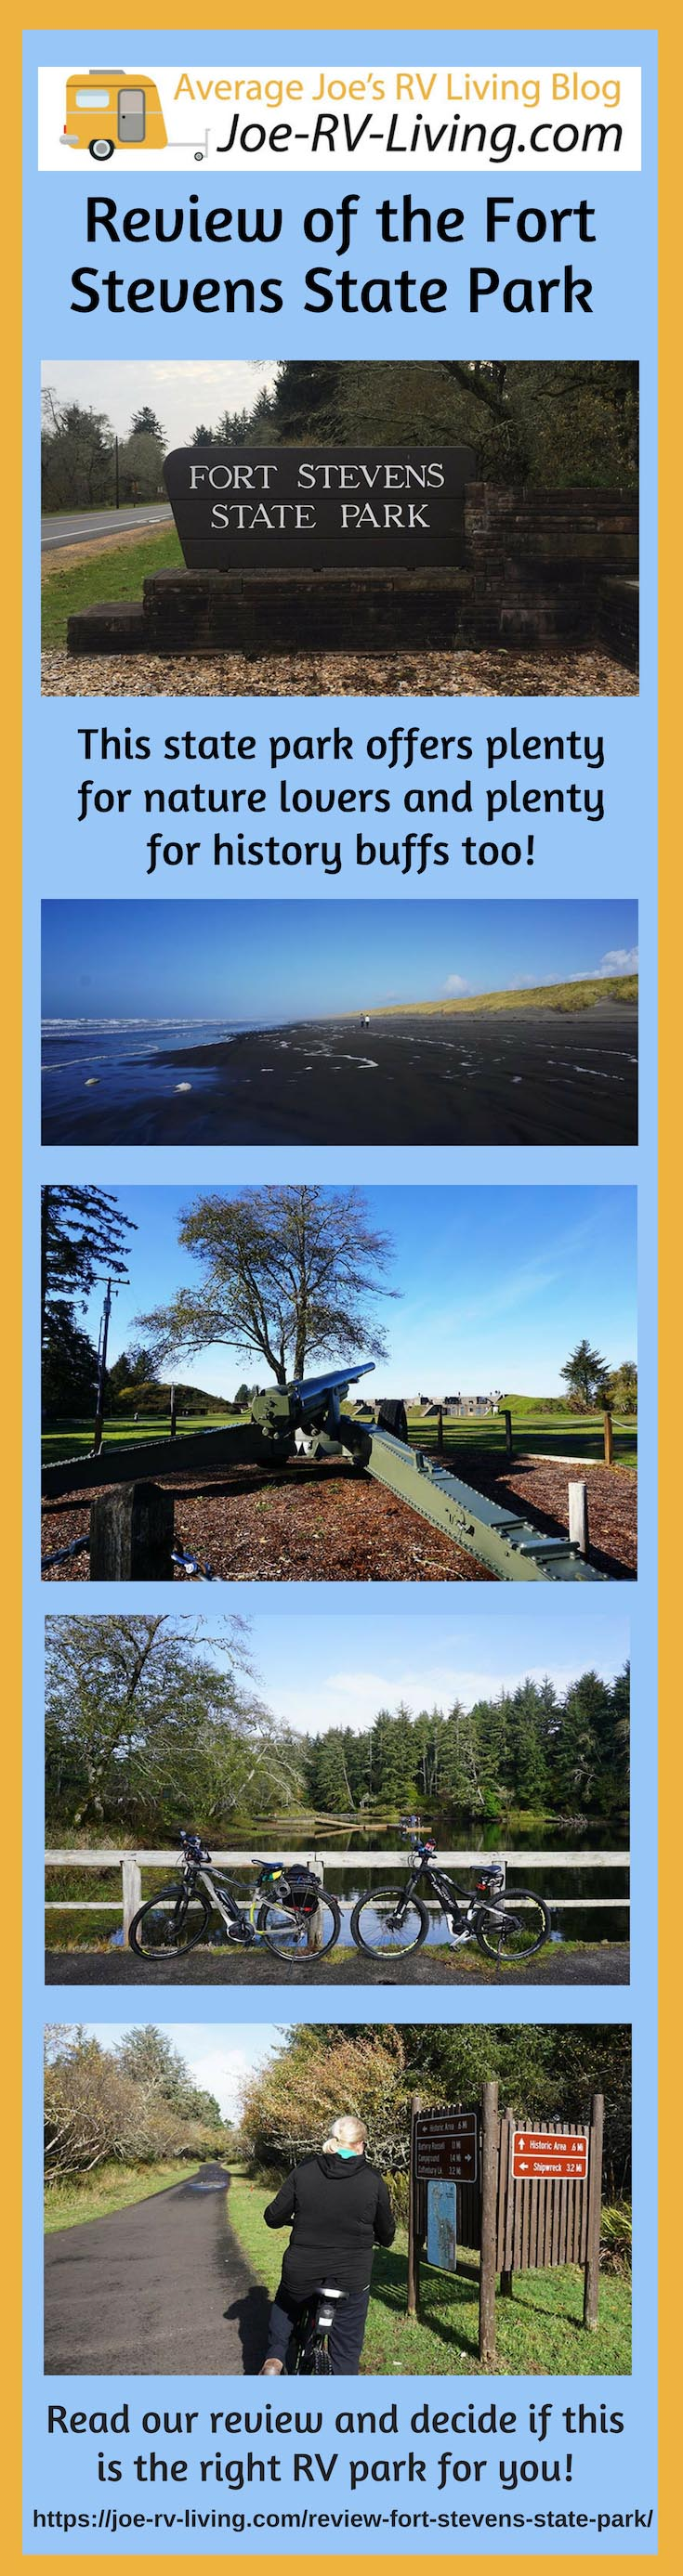 Review of Fort Stevens State Park, Northern Oregon Coast